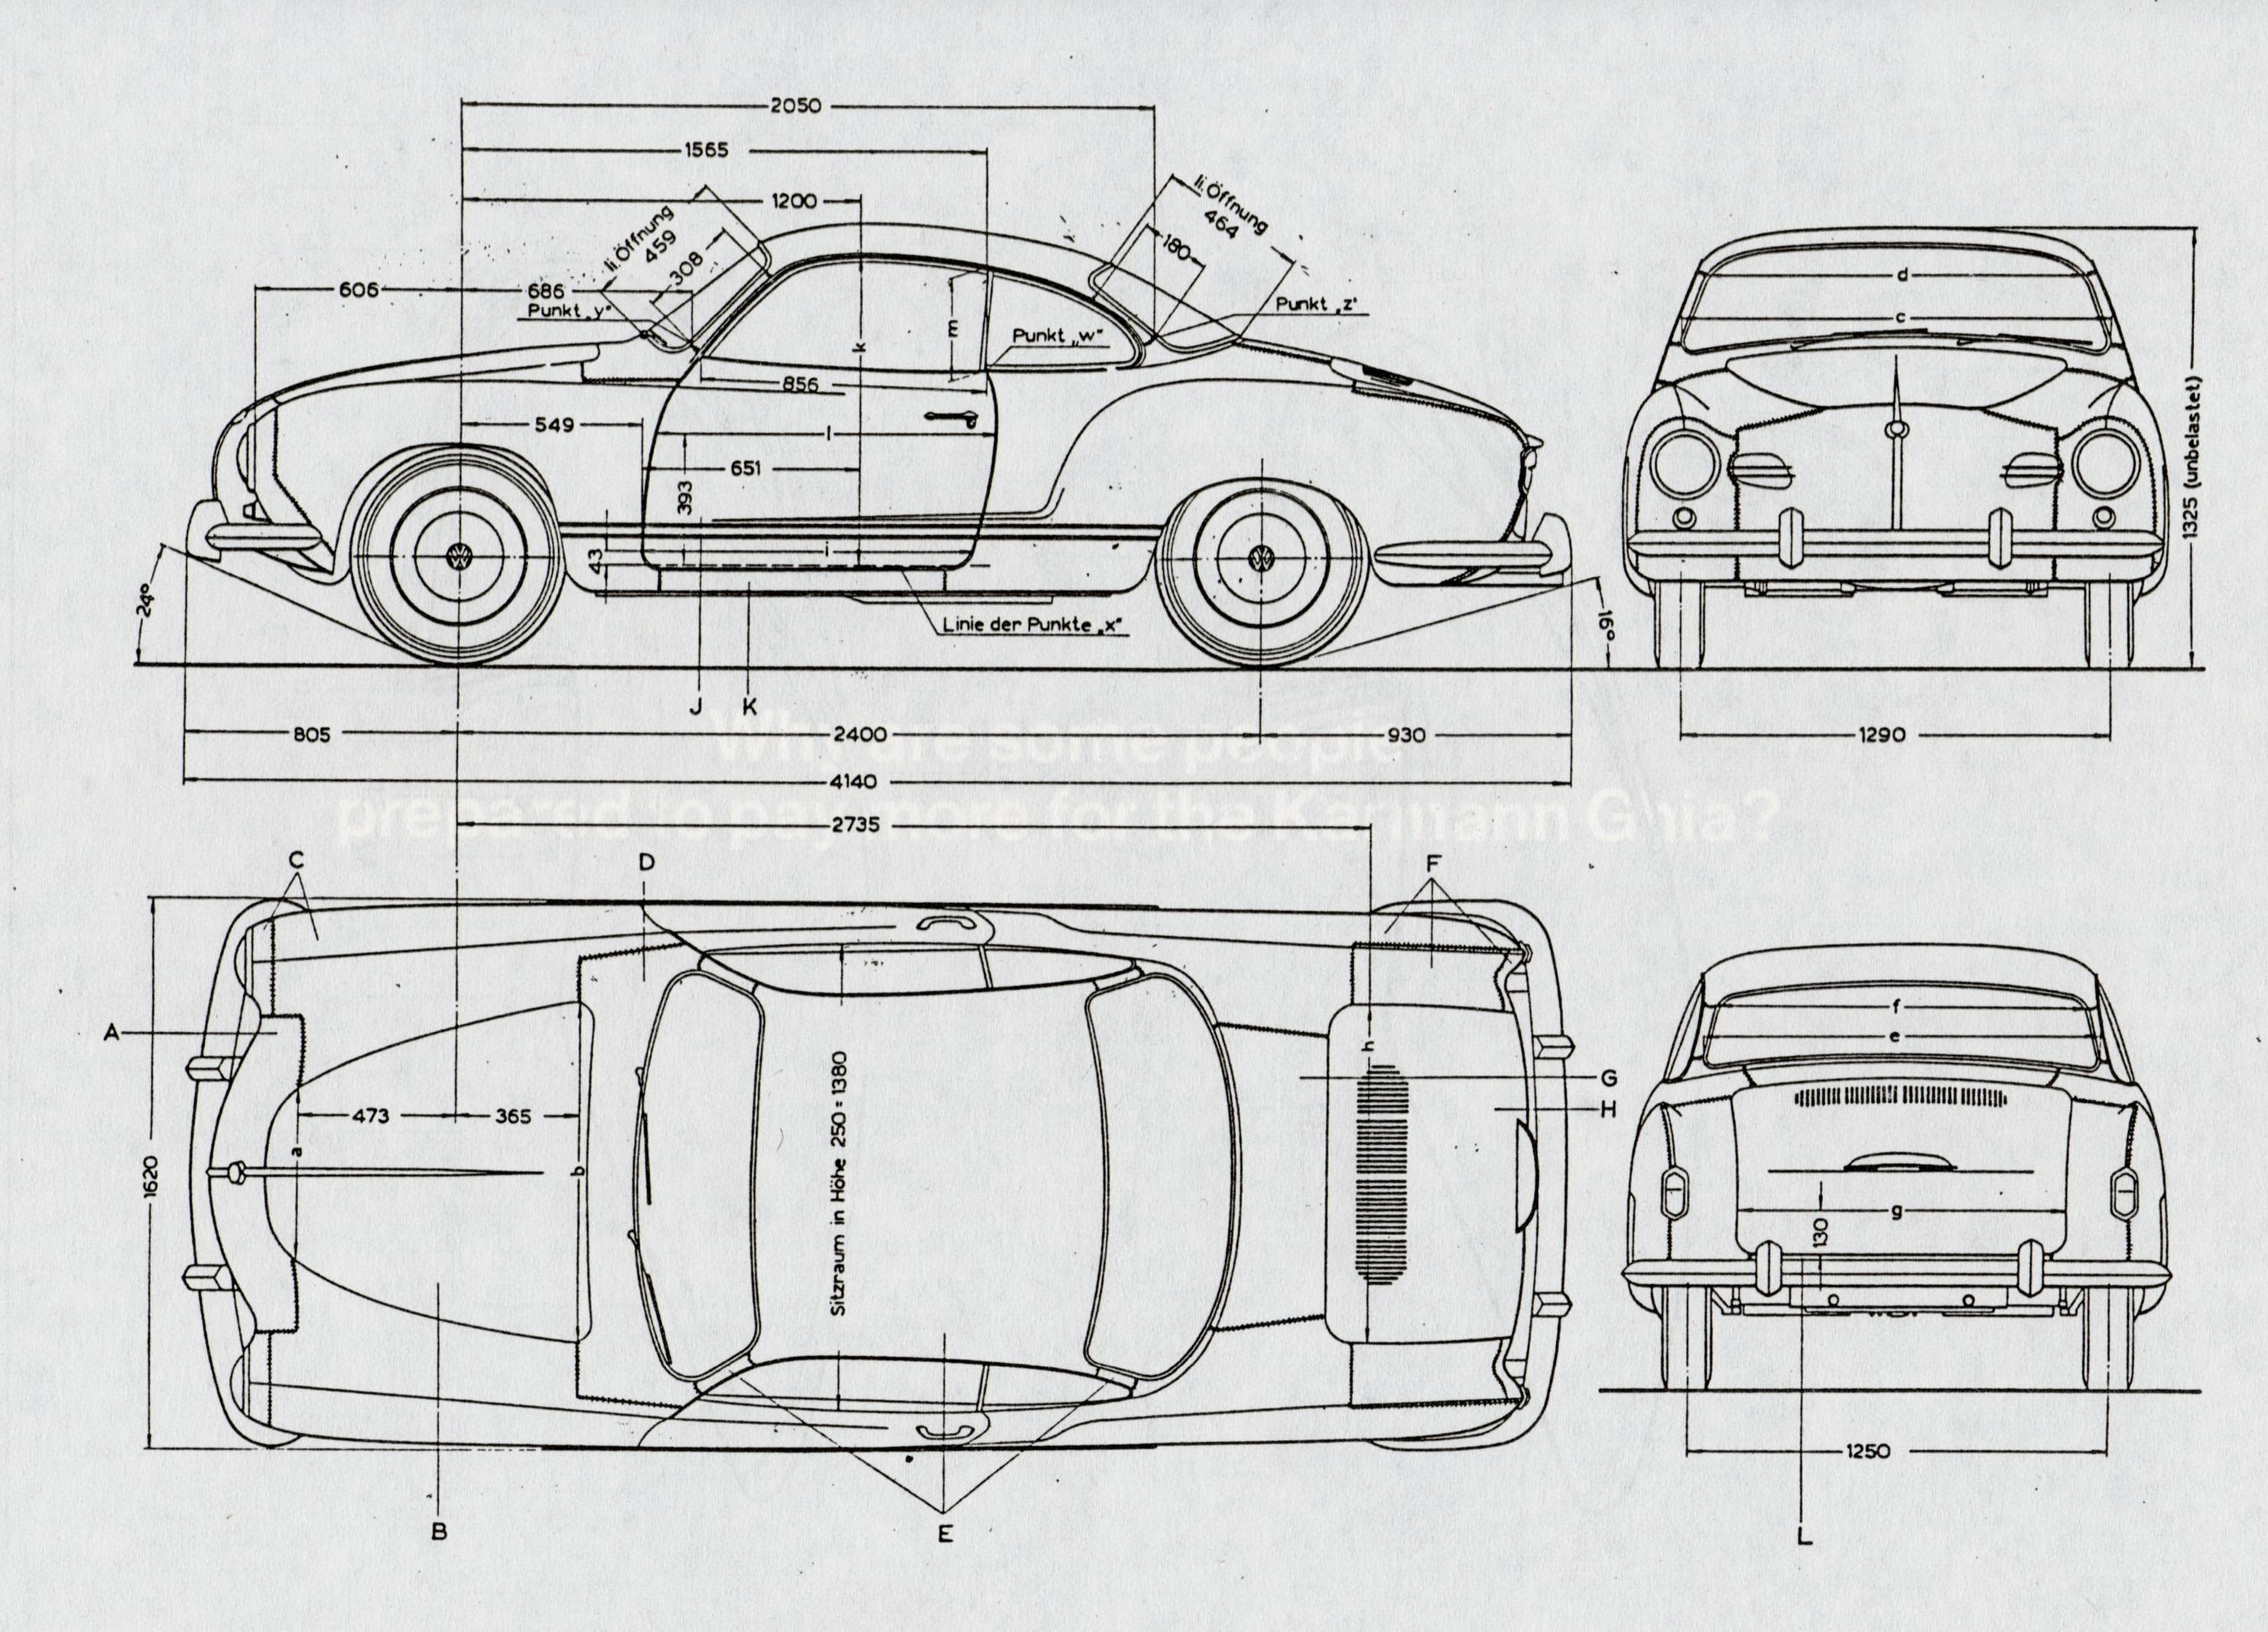 1 1974 Volkswagen Karmann Ghia Car Engine Diagram And